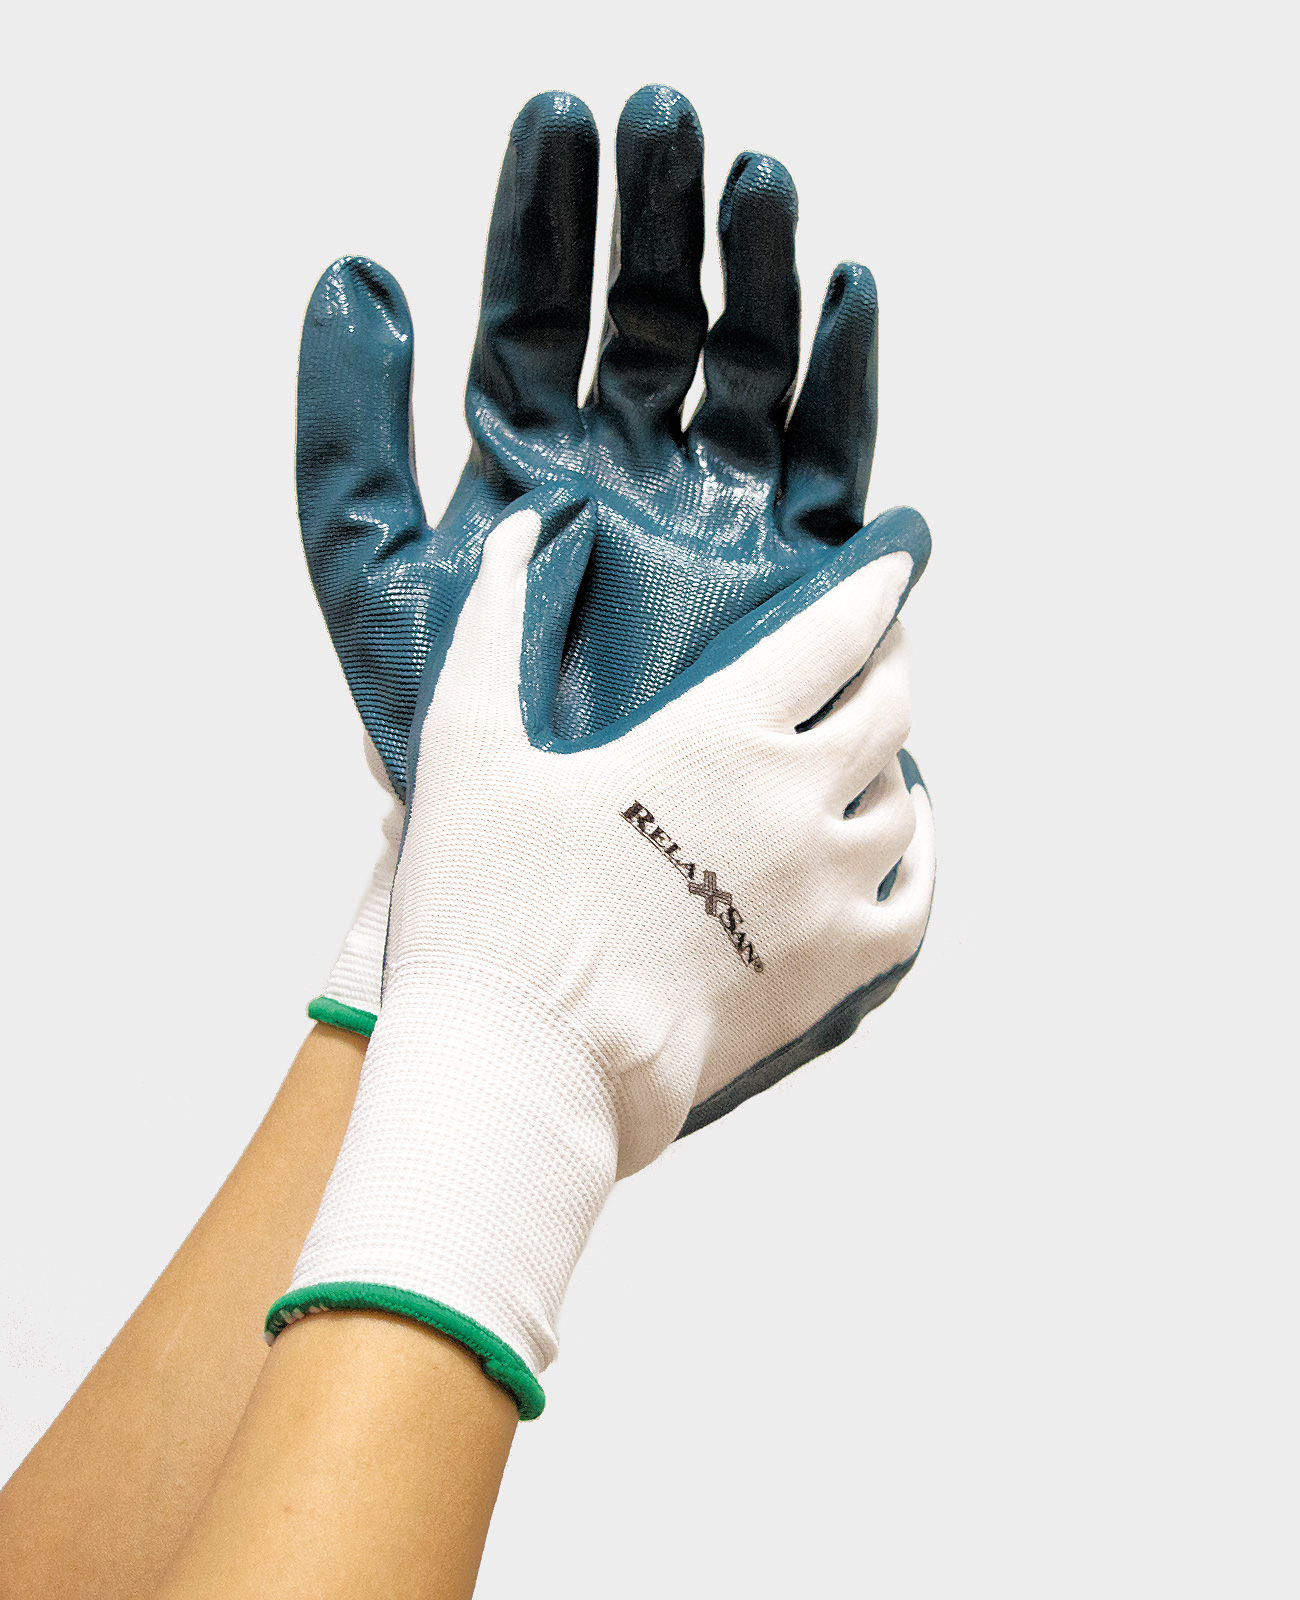 marketing_accessories-relaxsan-gloves